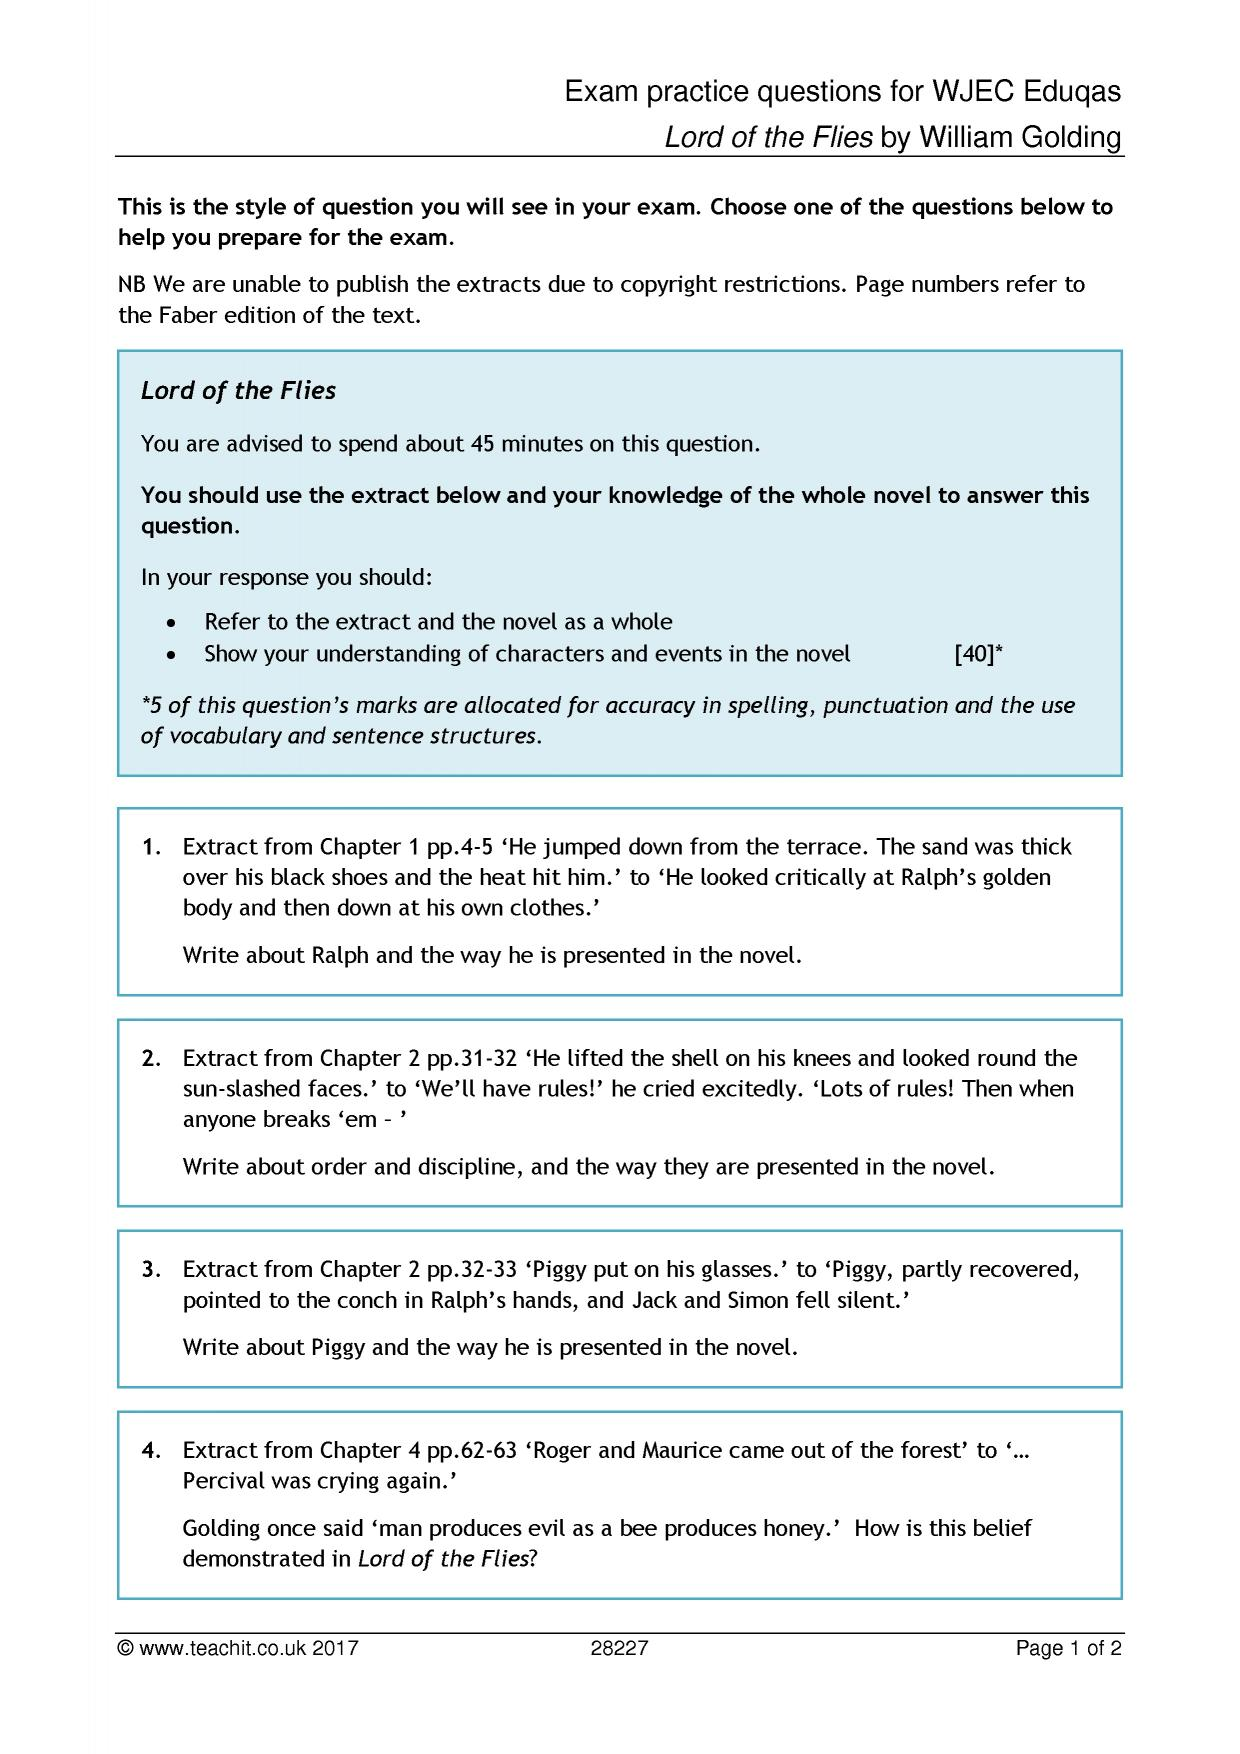 Exam practice questions for WJEC Eduqas - Lord of the ...